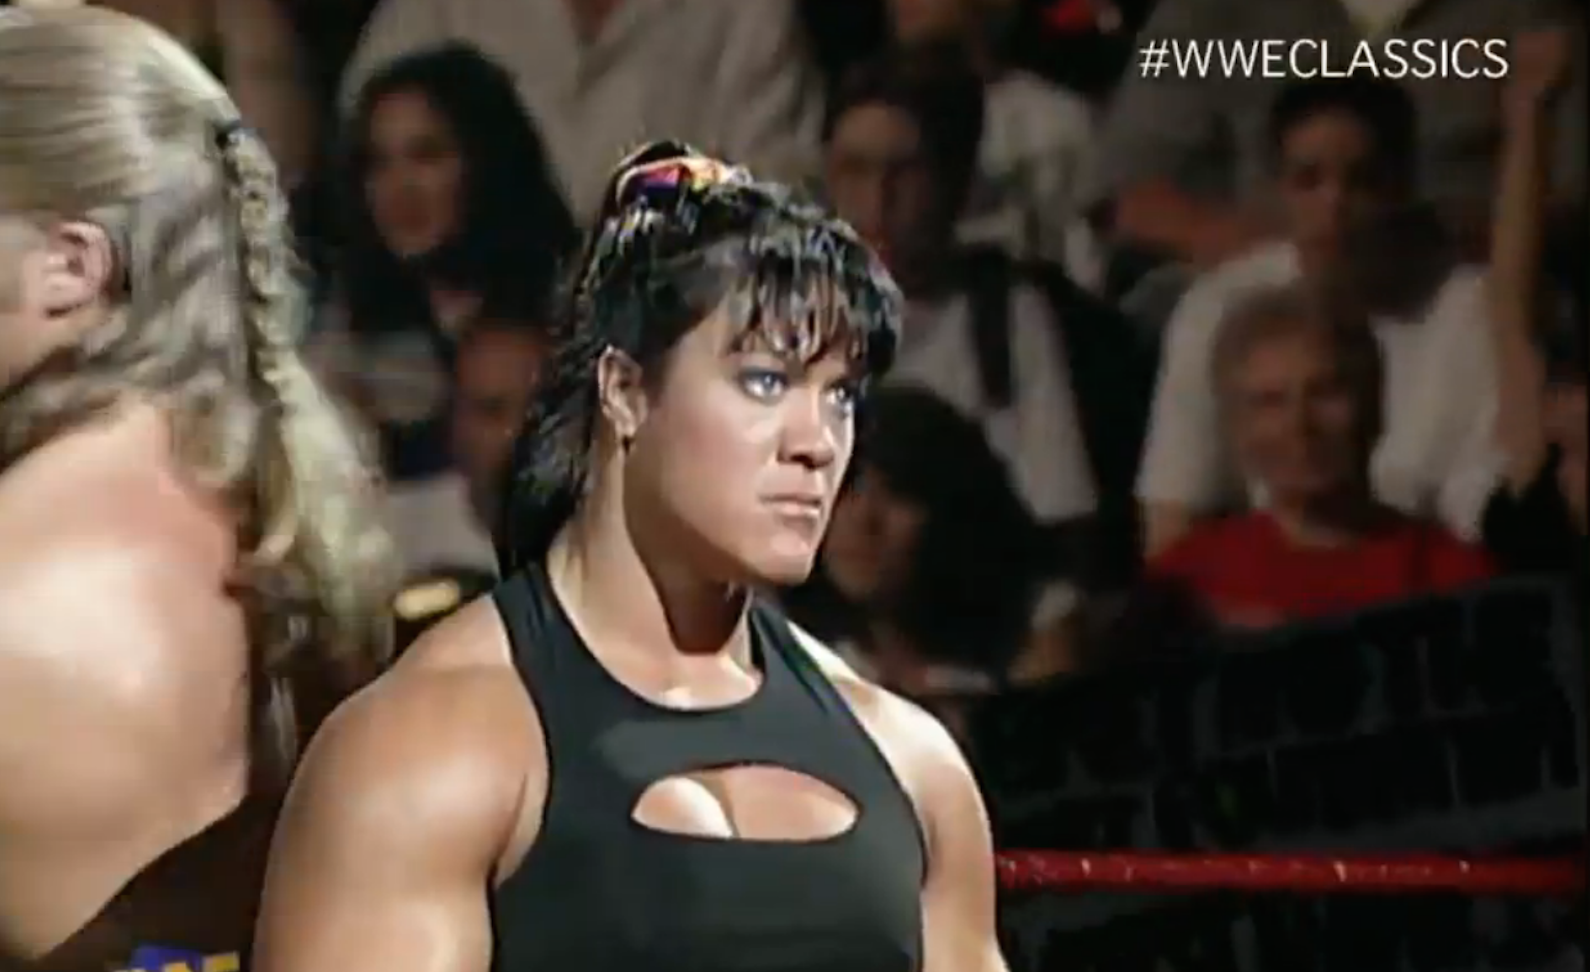 Manager believes he knows how former WWE star Chyna died